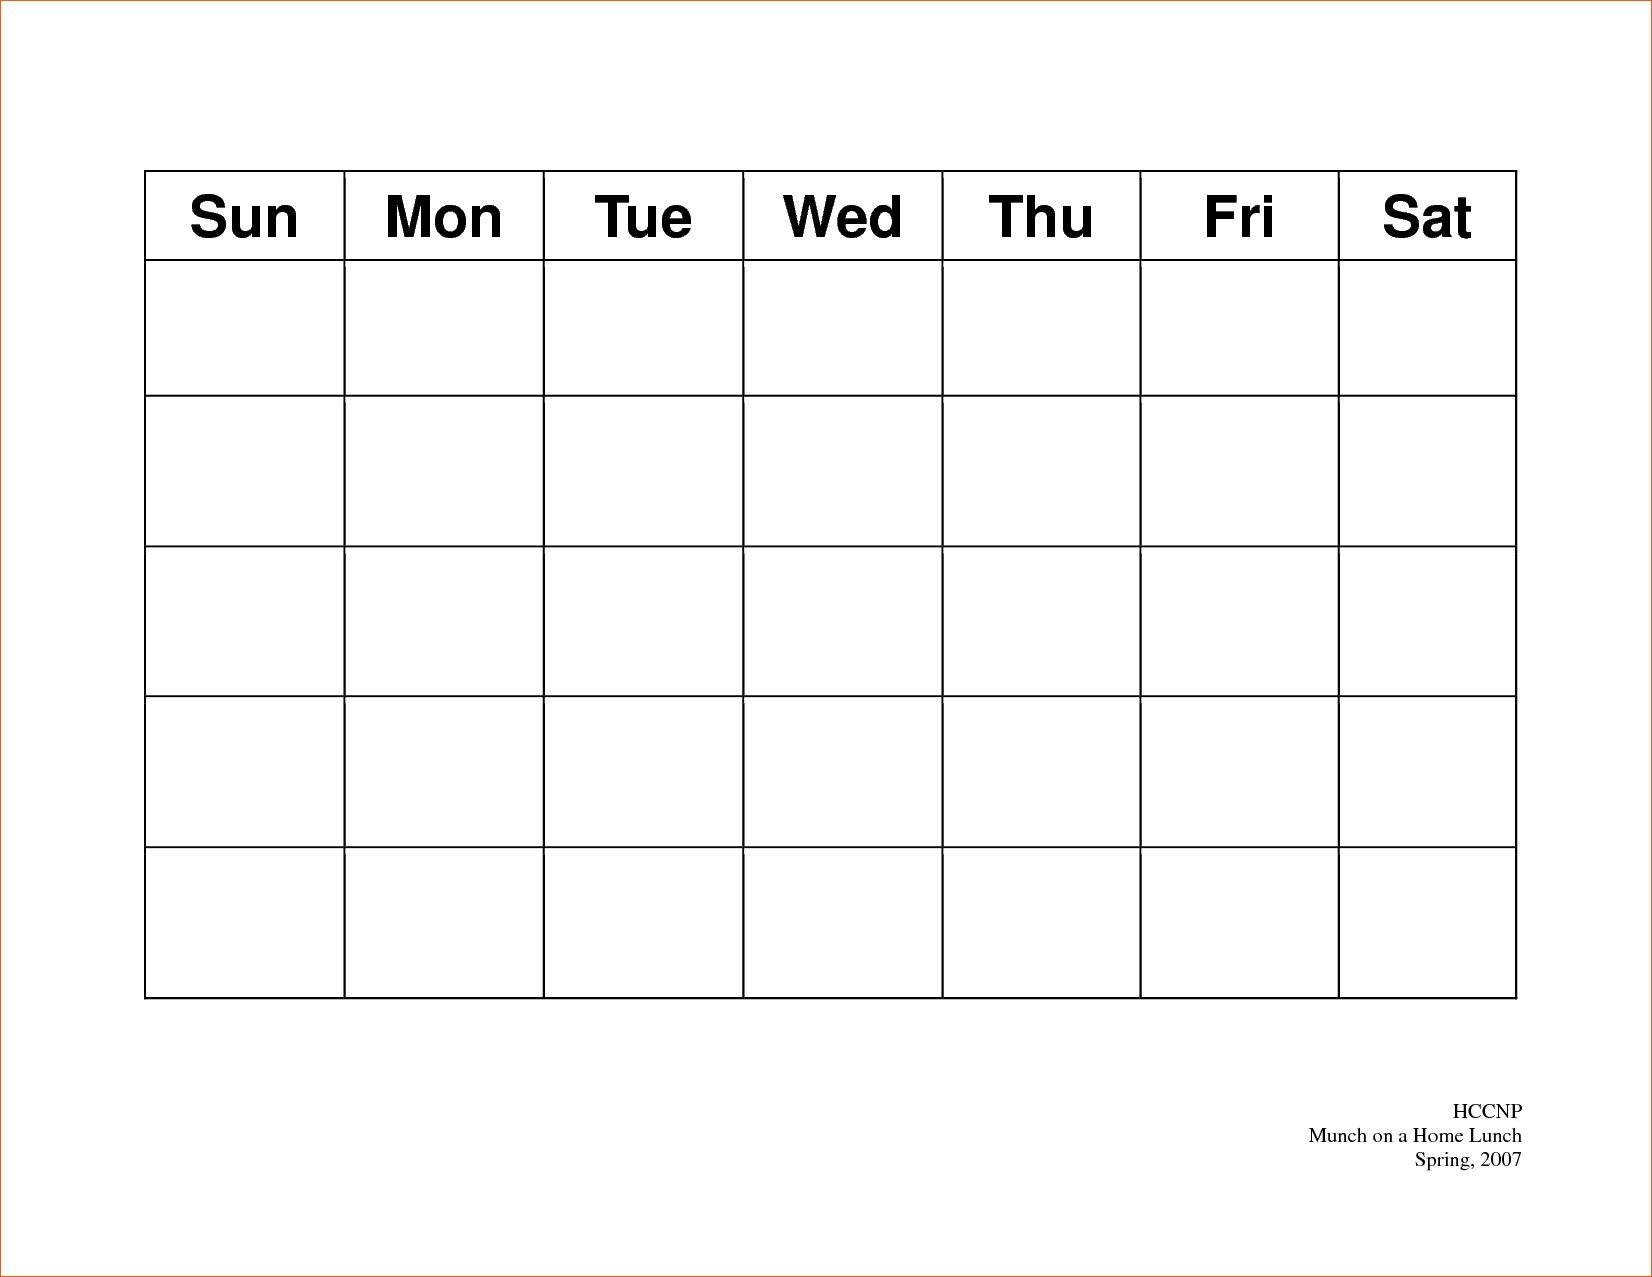 Calendar 5 Day Weekly Calendar Template On 5 Week Calendar regarding Printable 5 Day Week Calendar